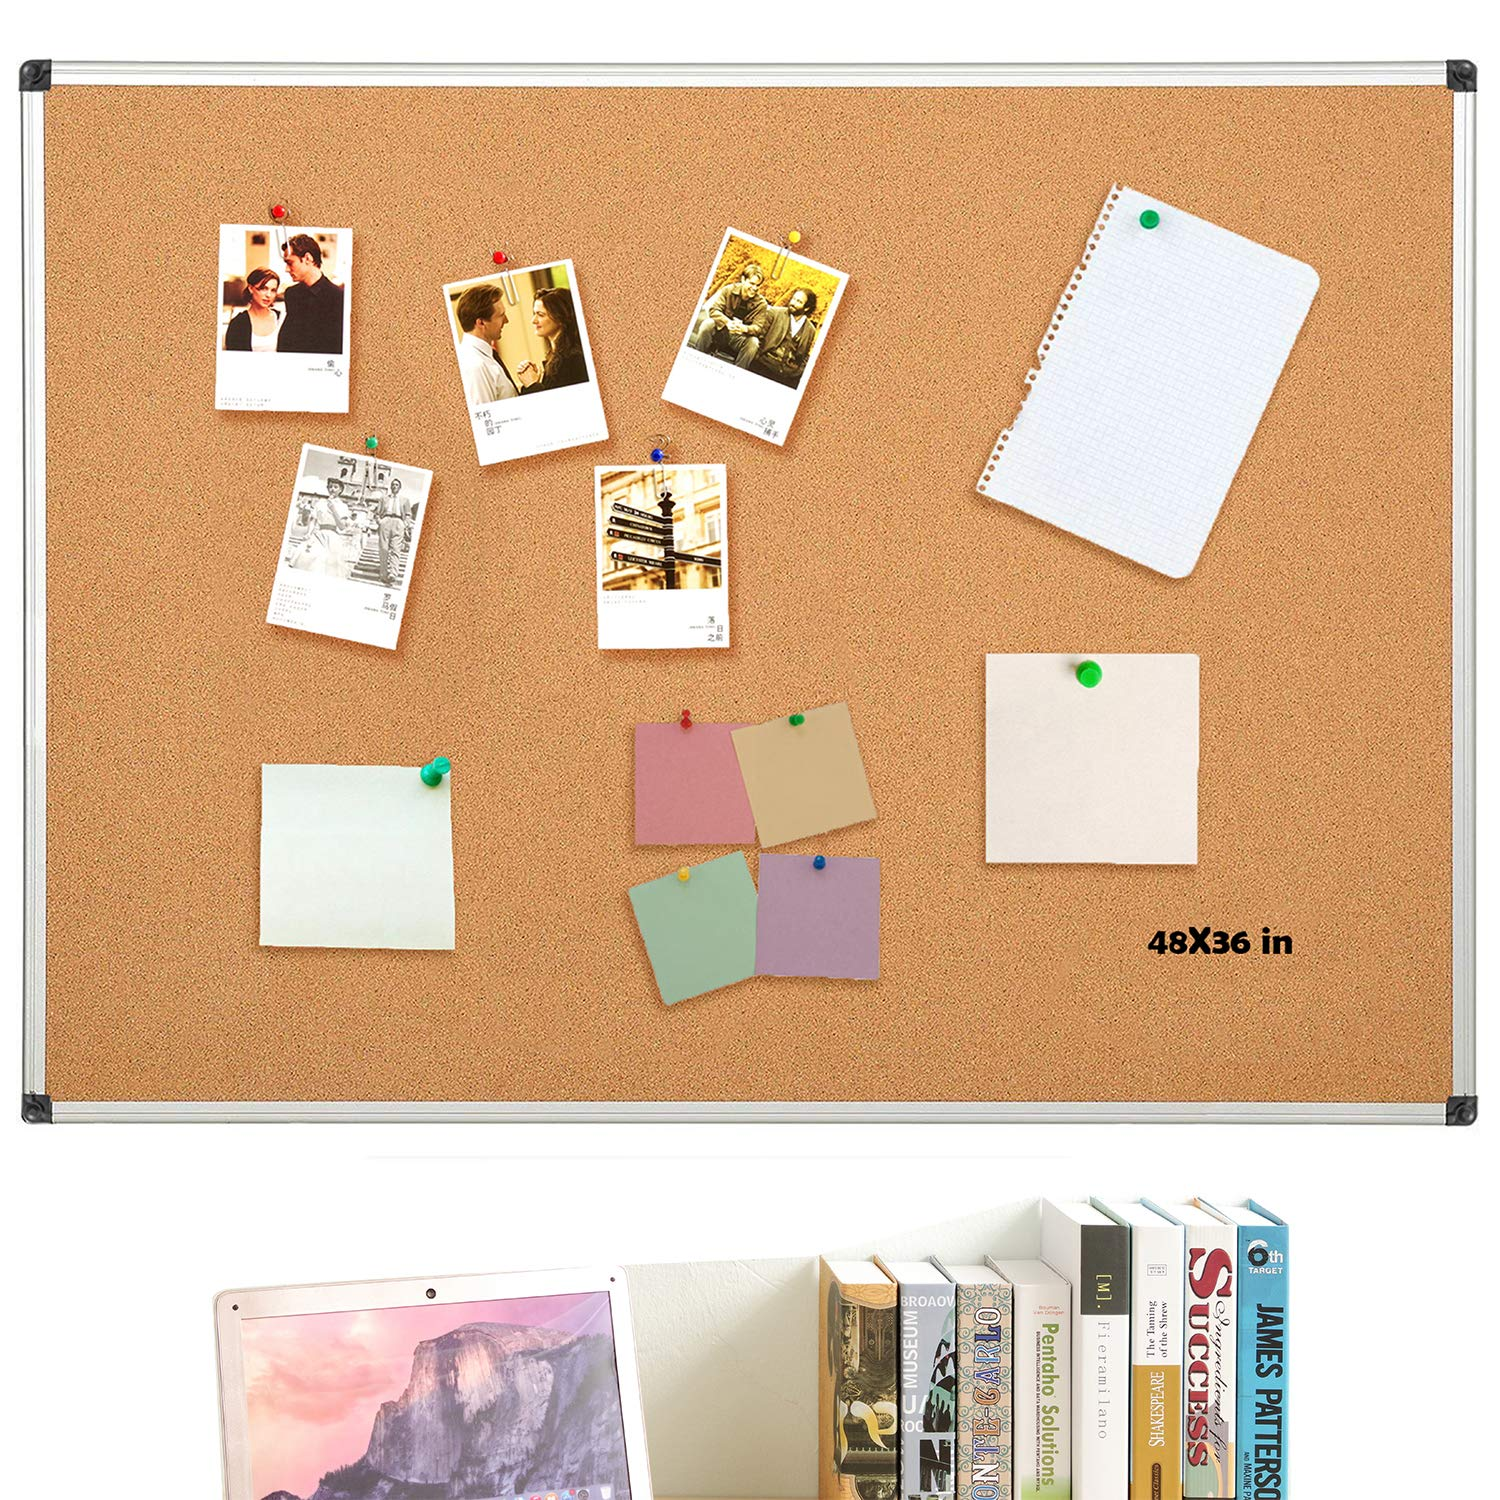 Aluminum Frame Cork Board Bulletin Board 48 x 36, Display and Organization Board, Wall Mounting Hardware, Push Pins Included Gideal